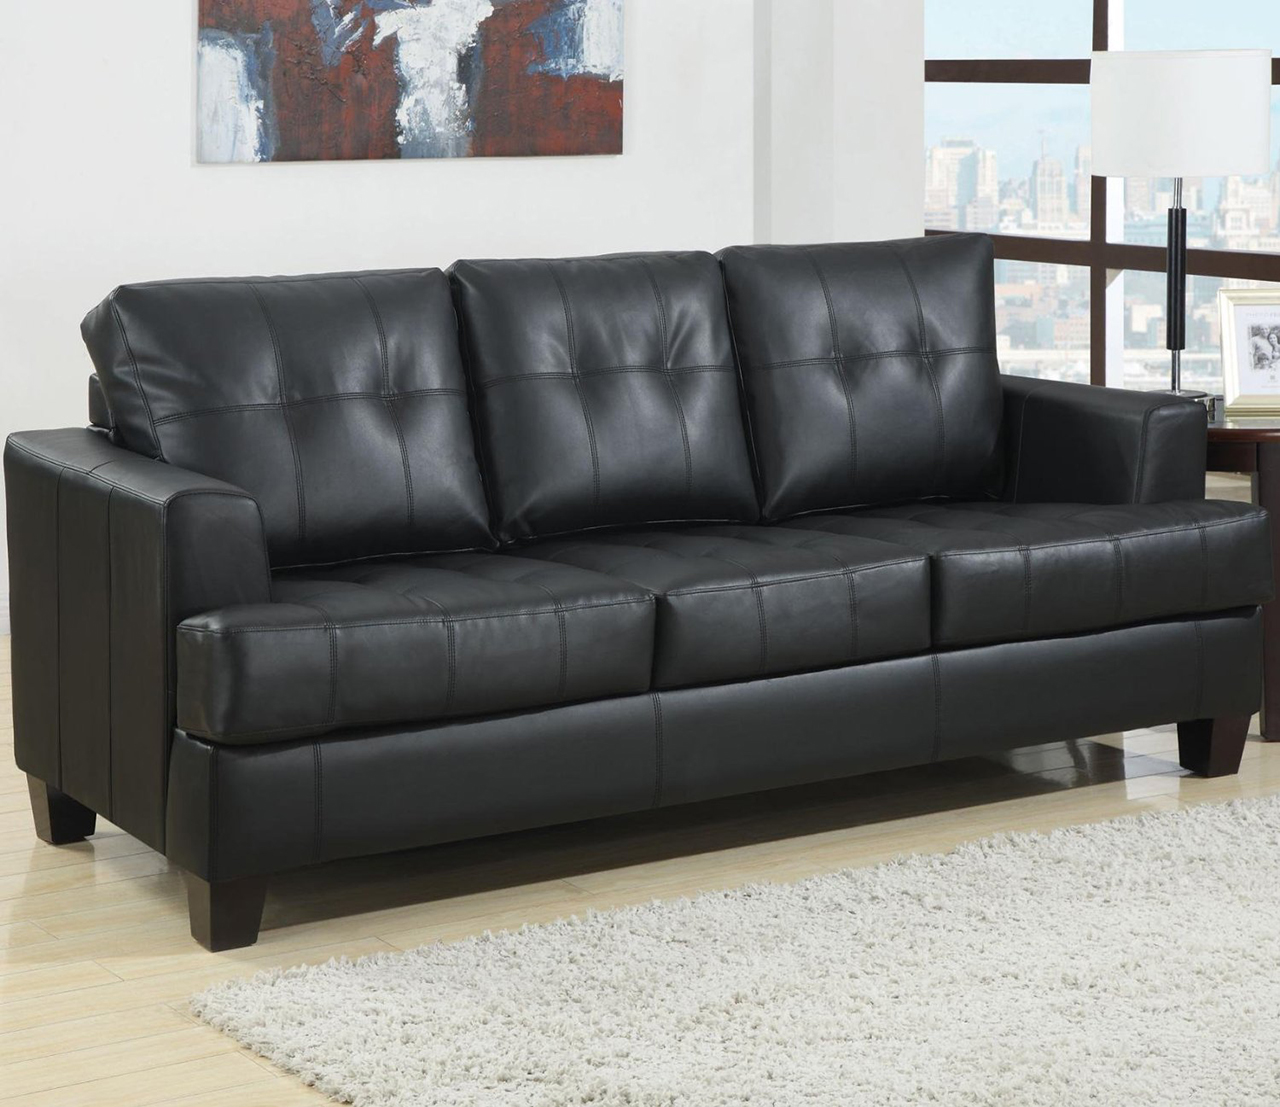 Sleeper Sofa - Coaster Home Furnishings Contemporary Sleeper, Black